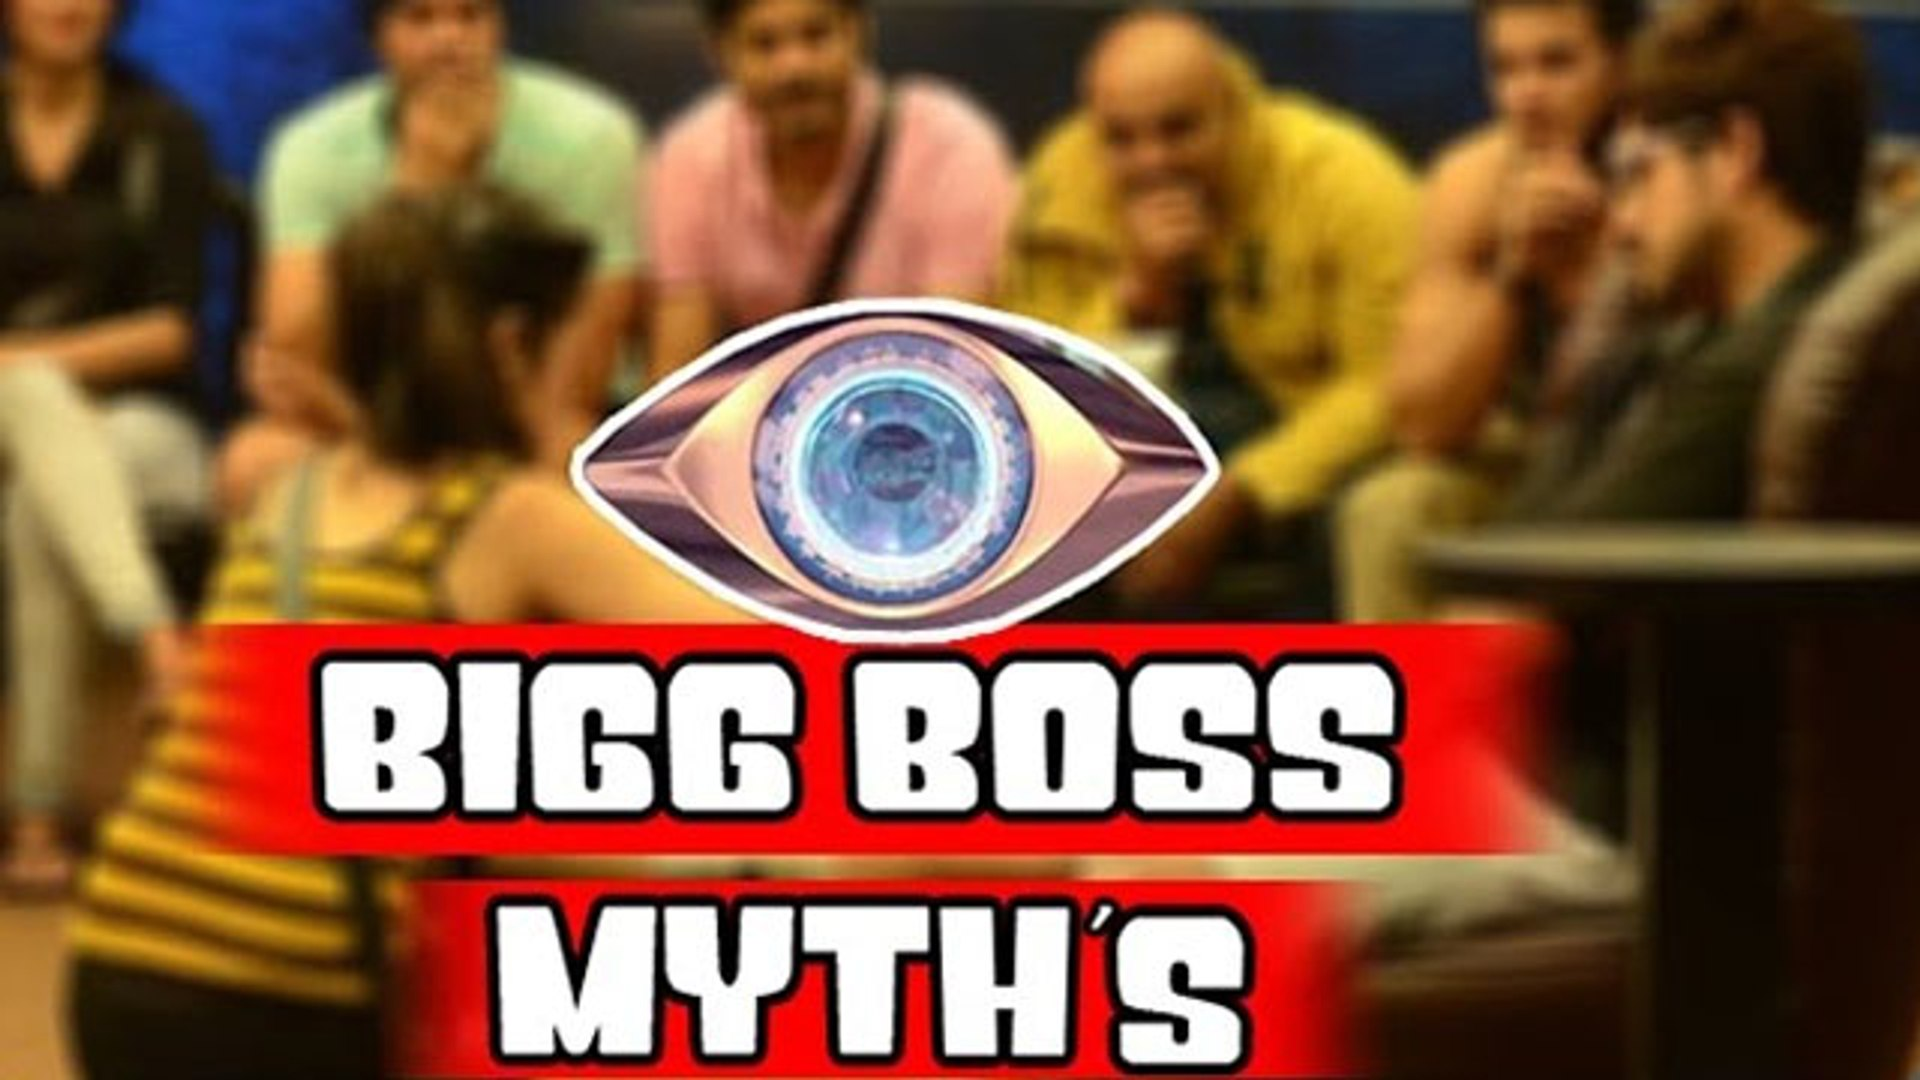 Bigg Boss | 10 MYTHS About Salman Khan's Reality Show!